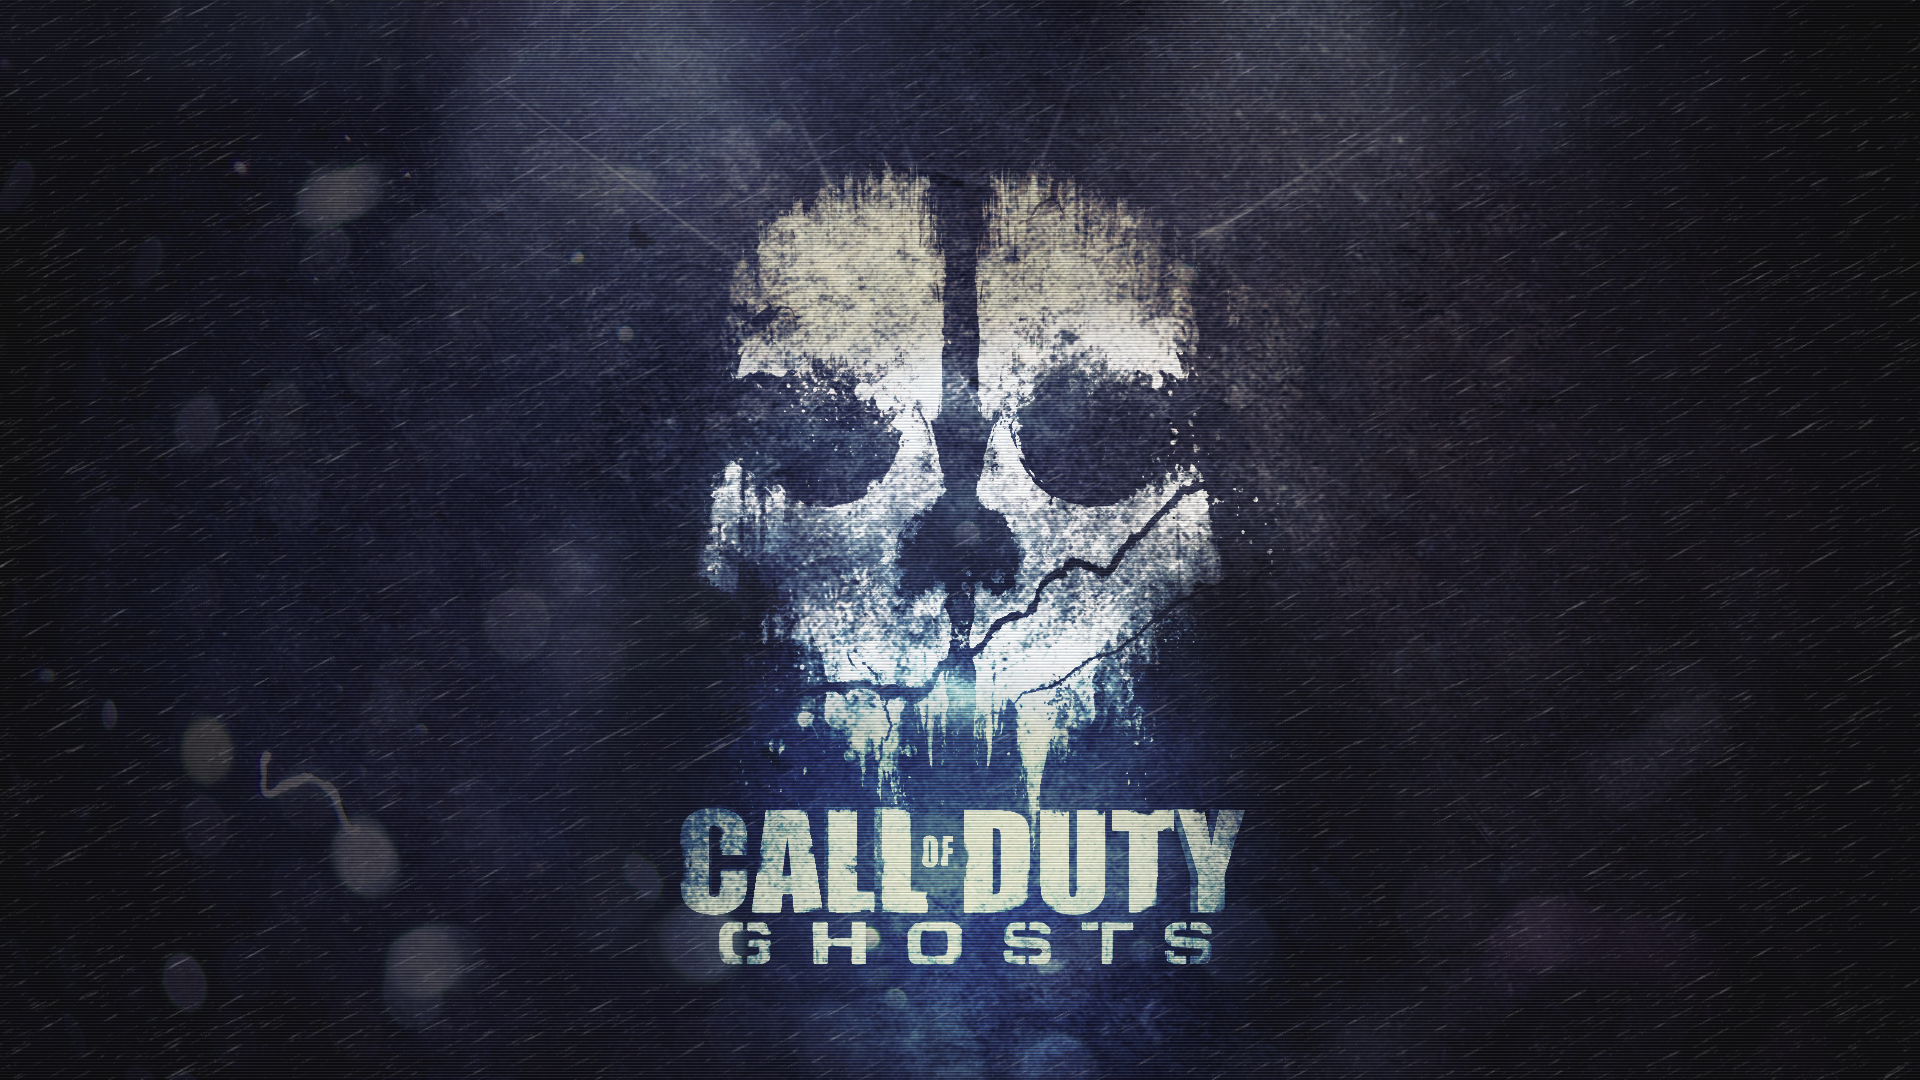 Cod ghosts skull full hd wallpaper and background image 1920x1080 video game call of duty ghosts skull call of duty wallpaper sciox Image collections